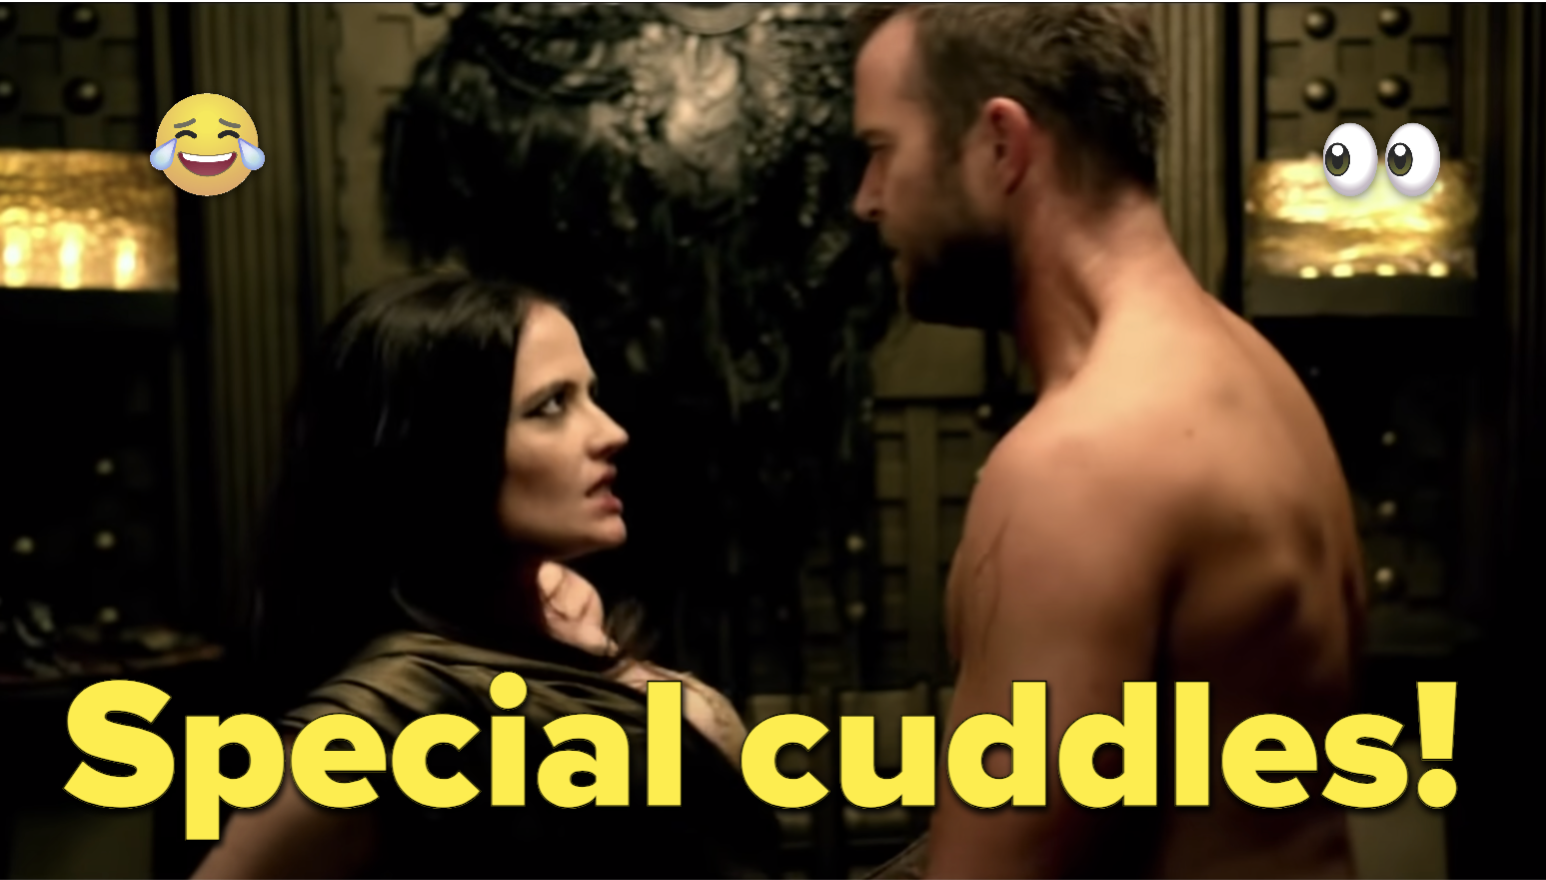 """A couple is about to have sex and the text, """"Special cuddles"""""""